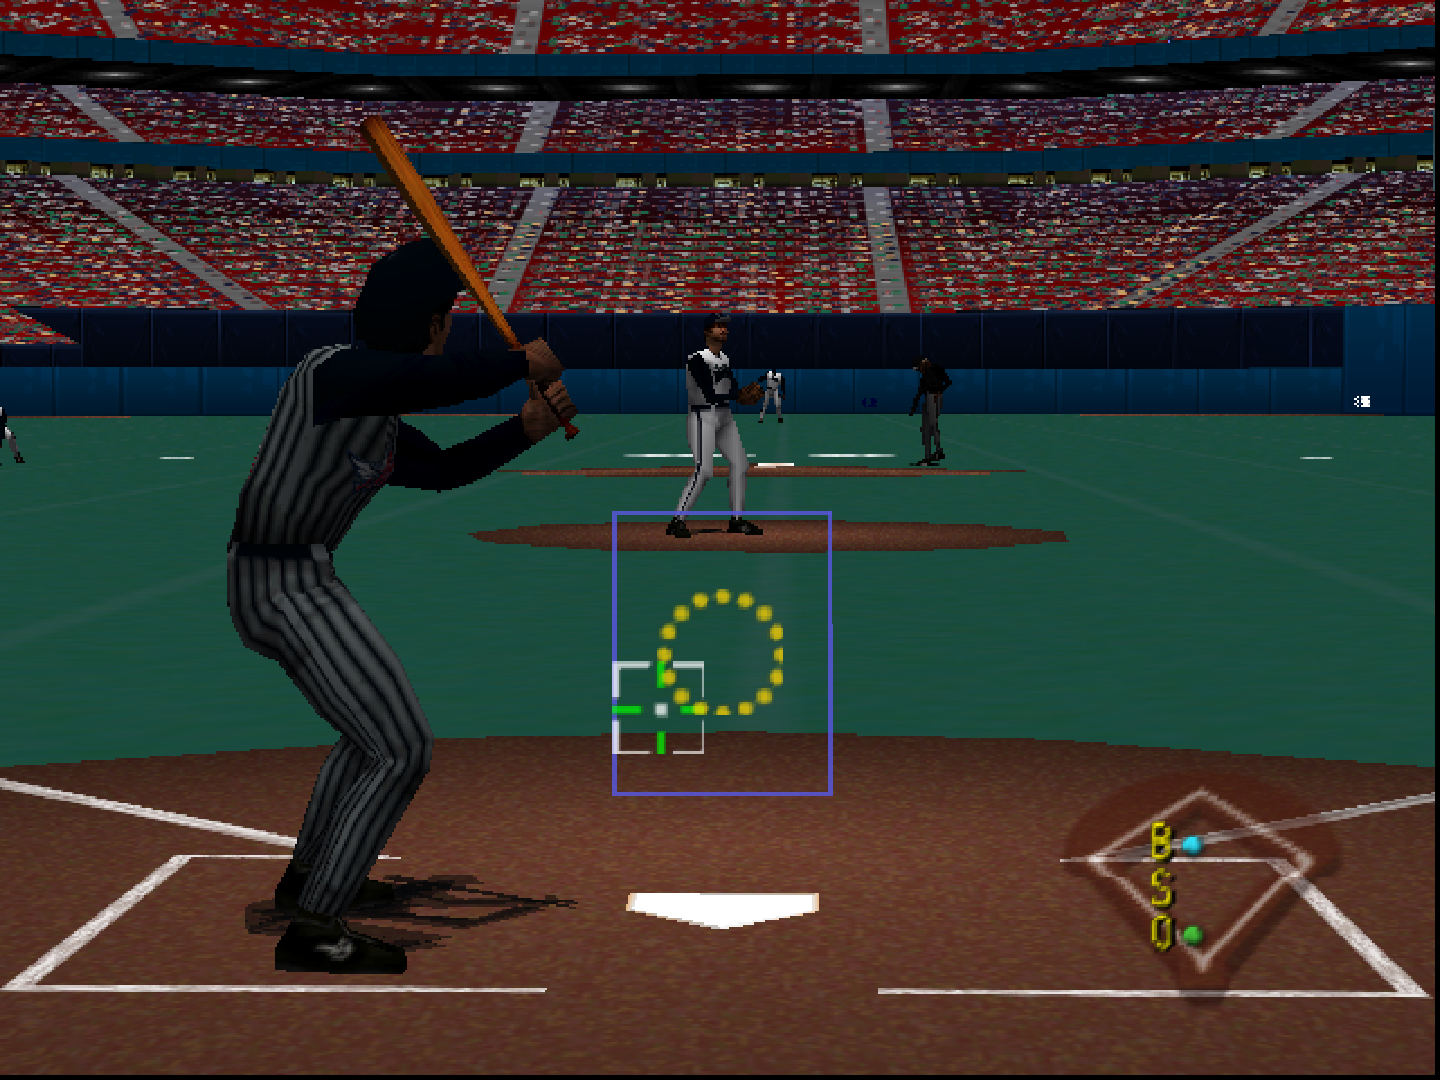 b98aea6e4e ... Major League Baseball Featuring Ken Griffey, Jr. - Screenshot -  Gameplay ...